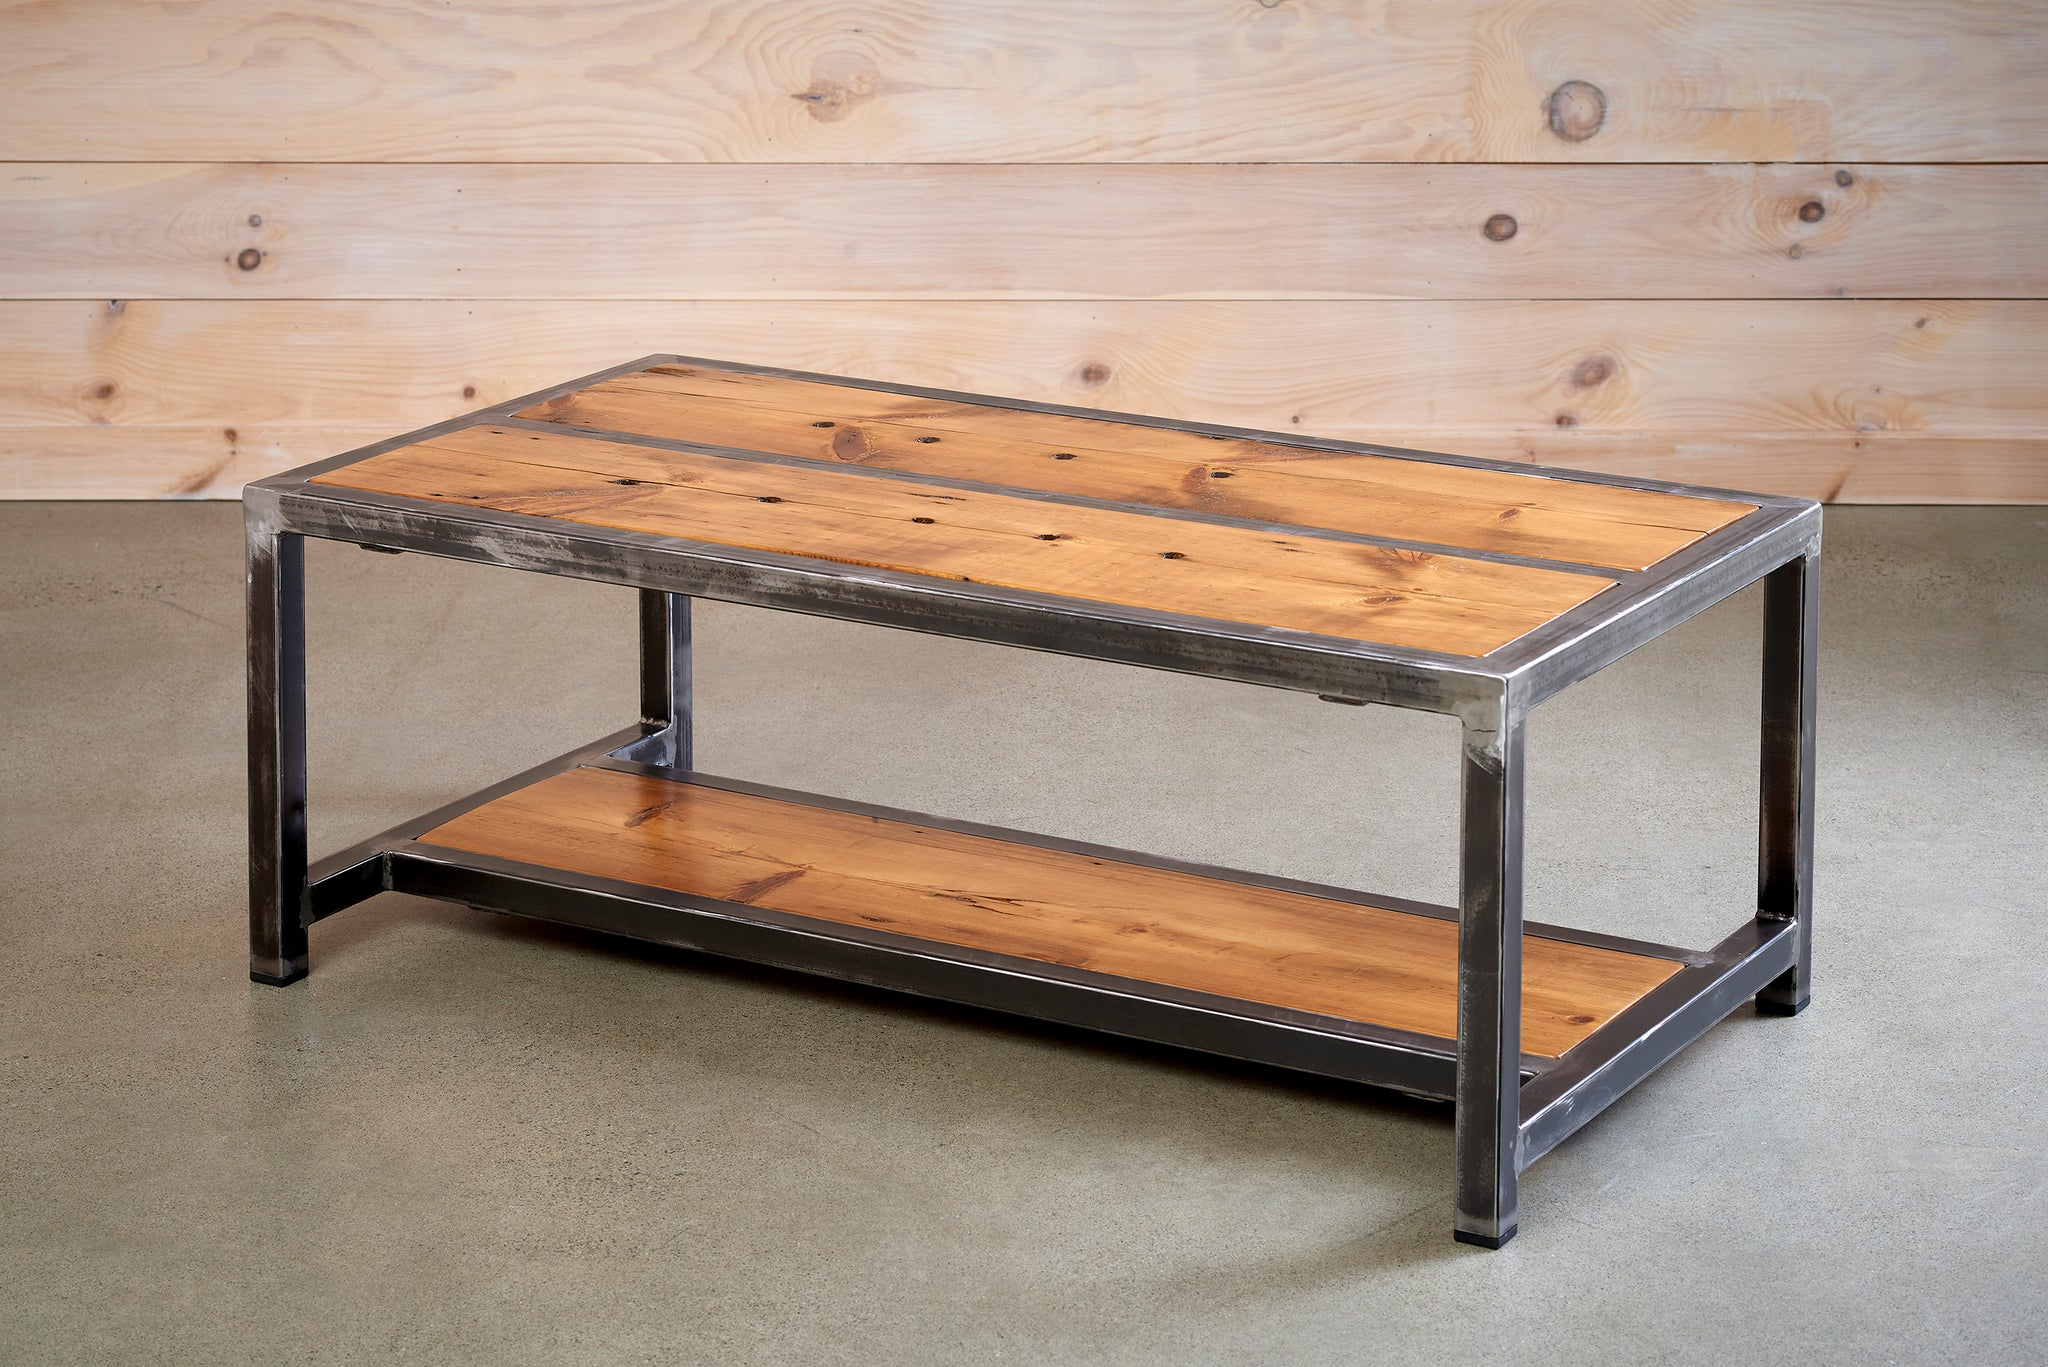 Coffee Table With Box Steel Legs And Frame Andrew Pearce Bowls